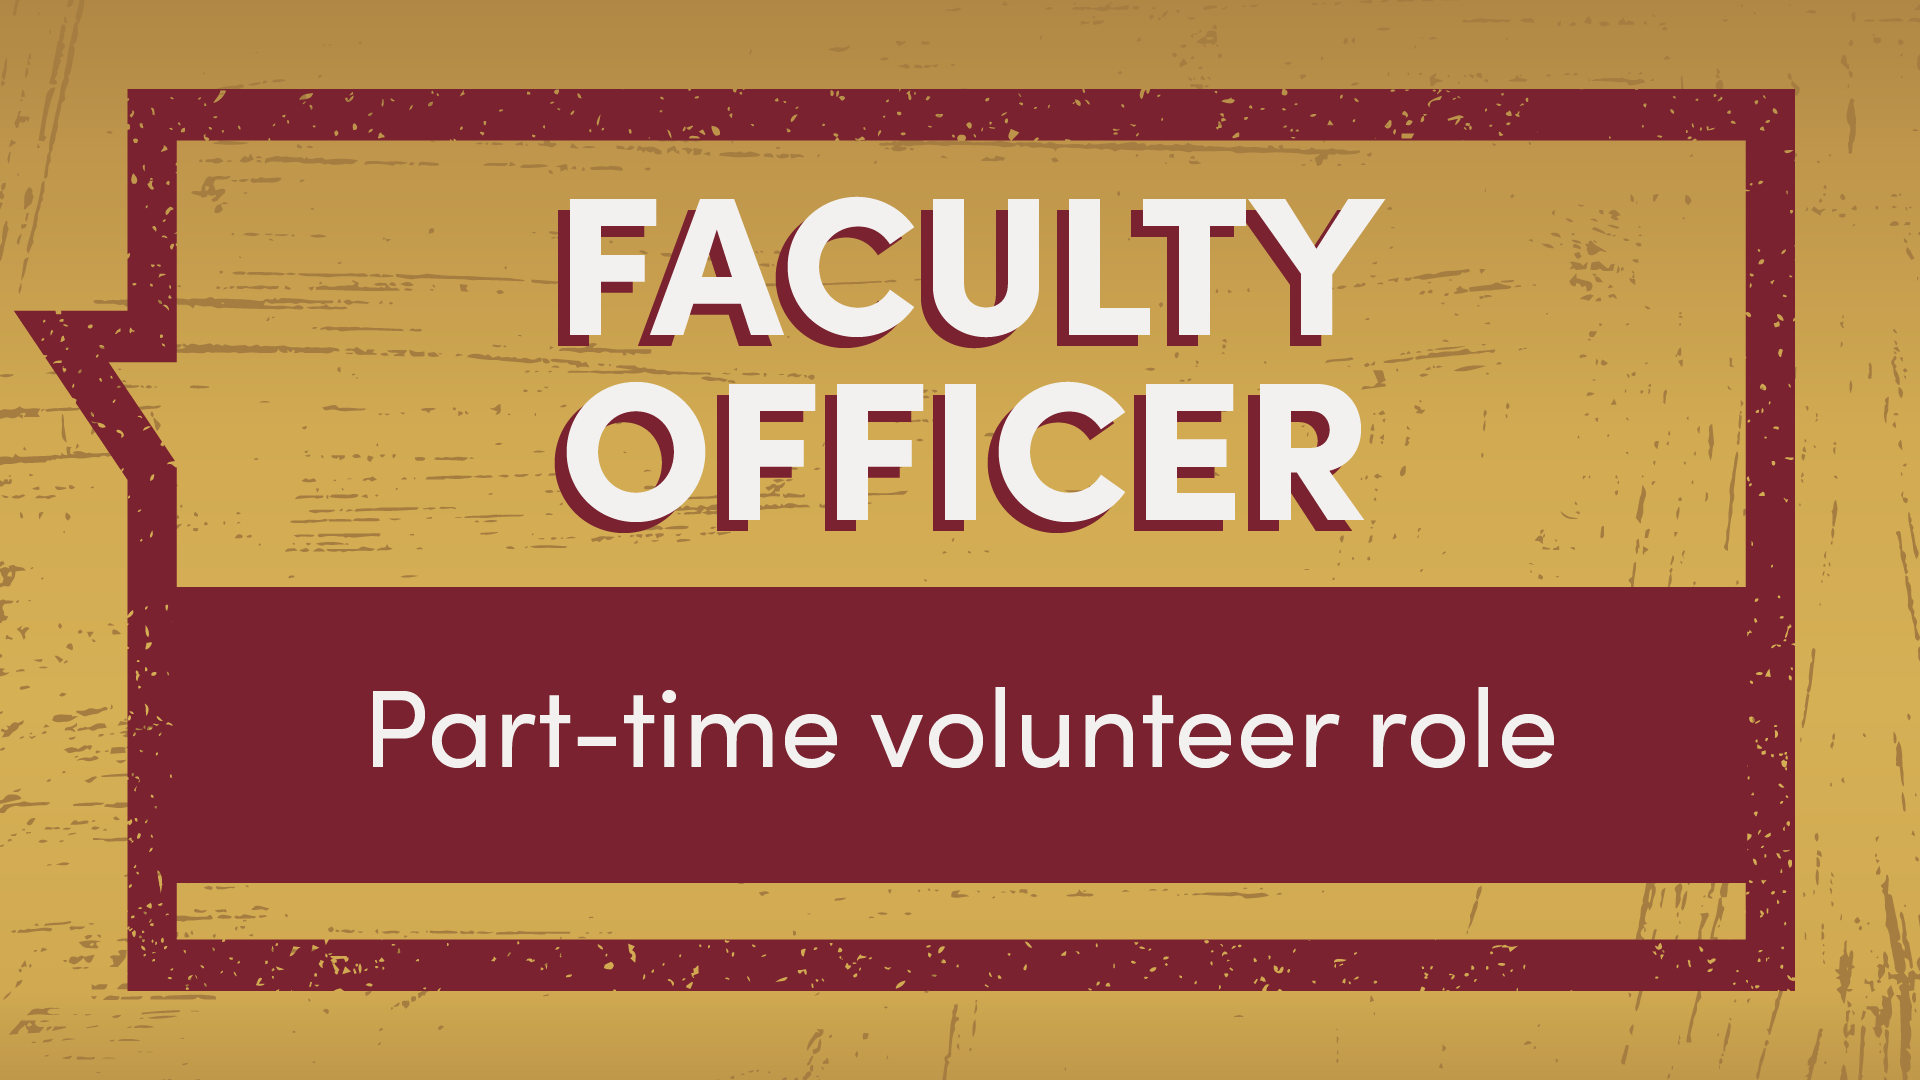 Faculty Officer part-time volunteer role